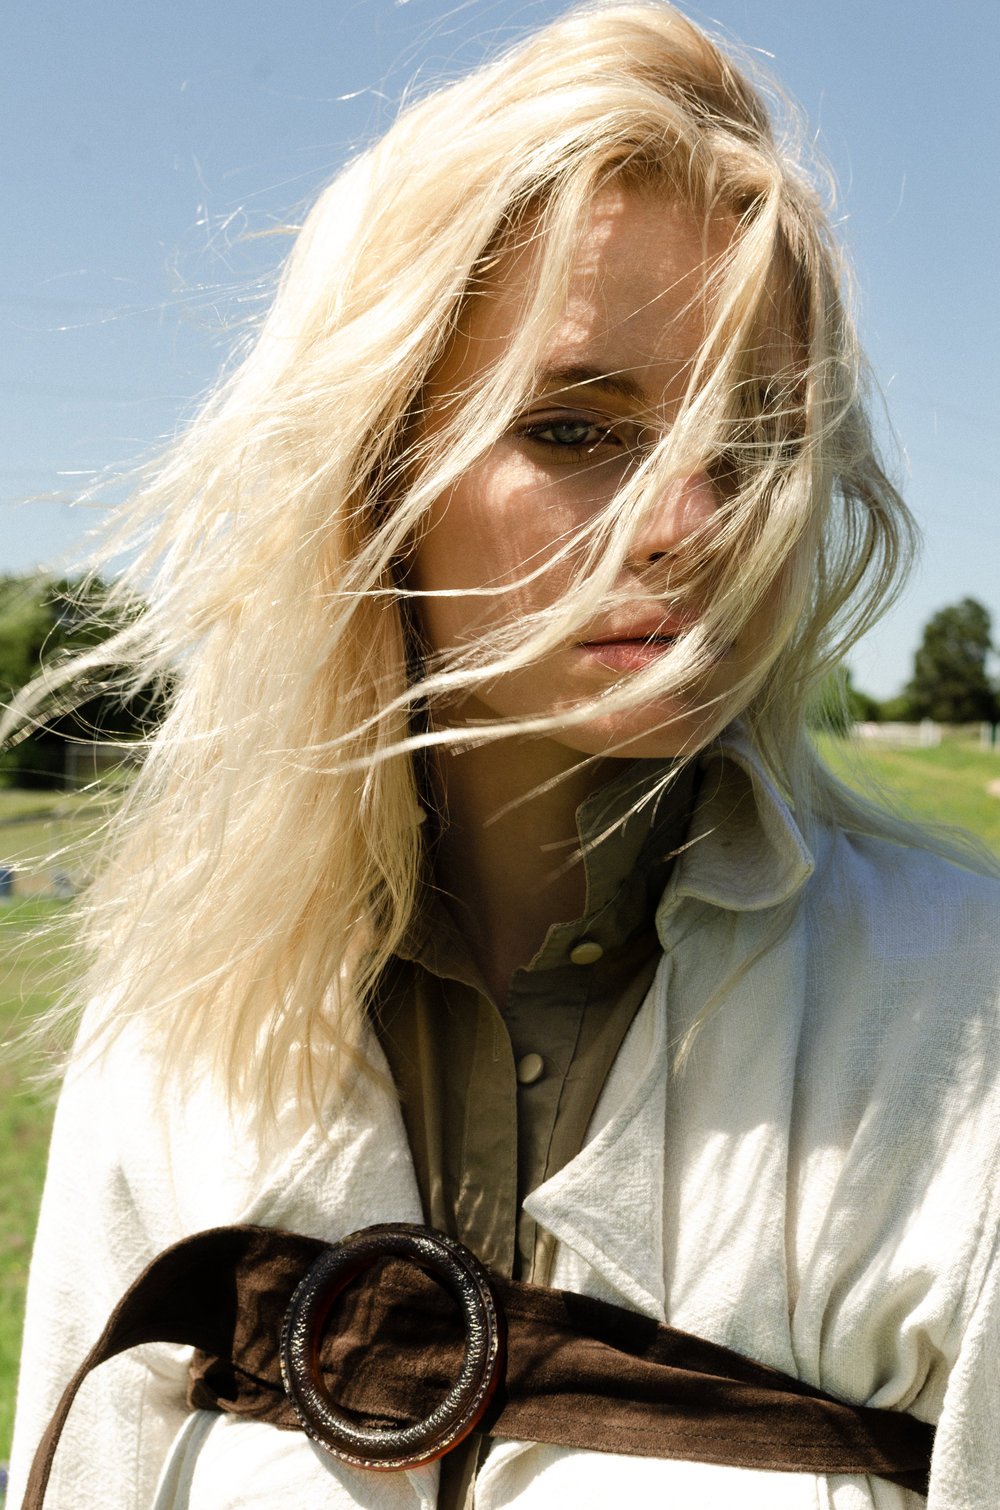 EXPEDITION - 7HUES MAGAZINE